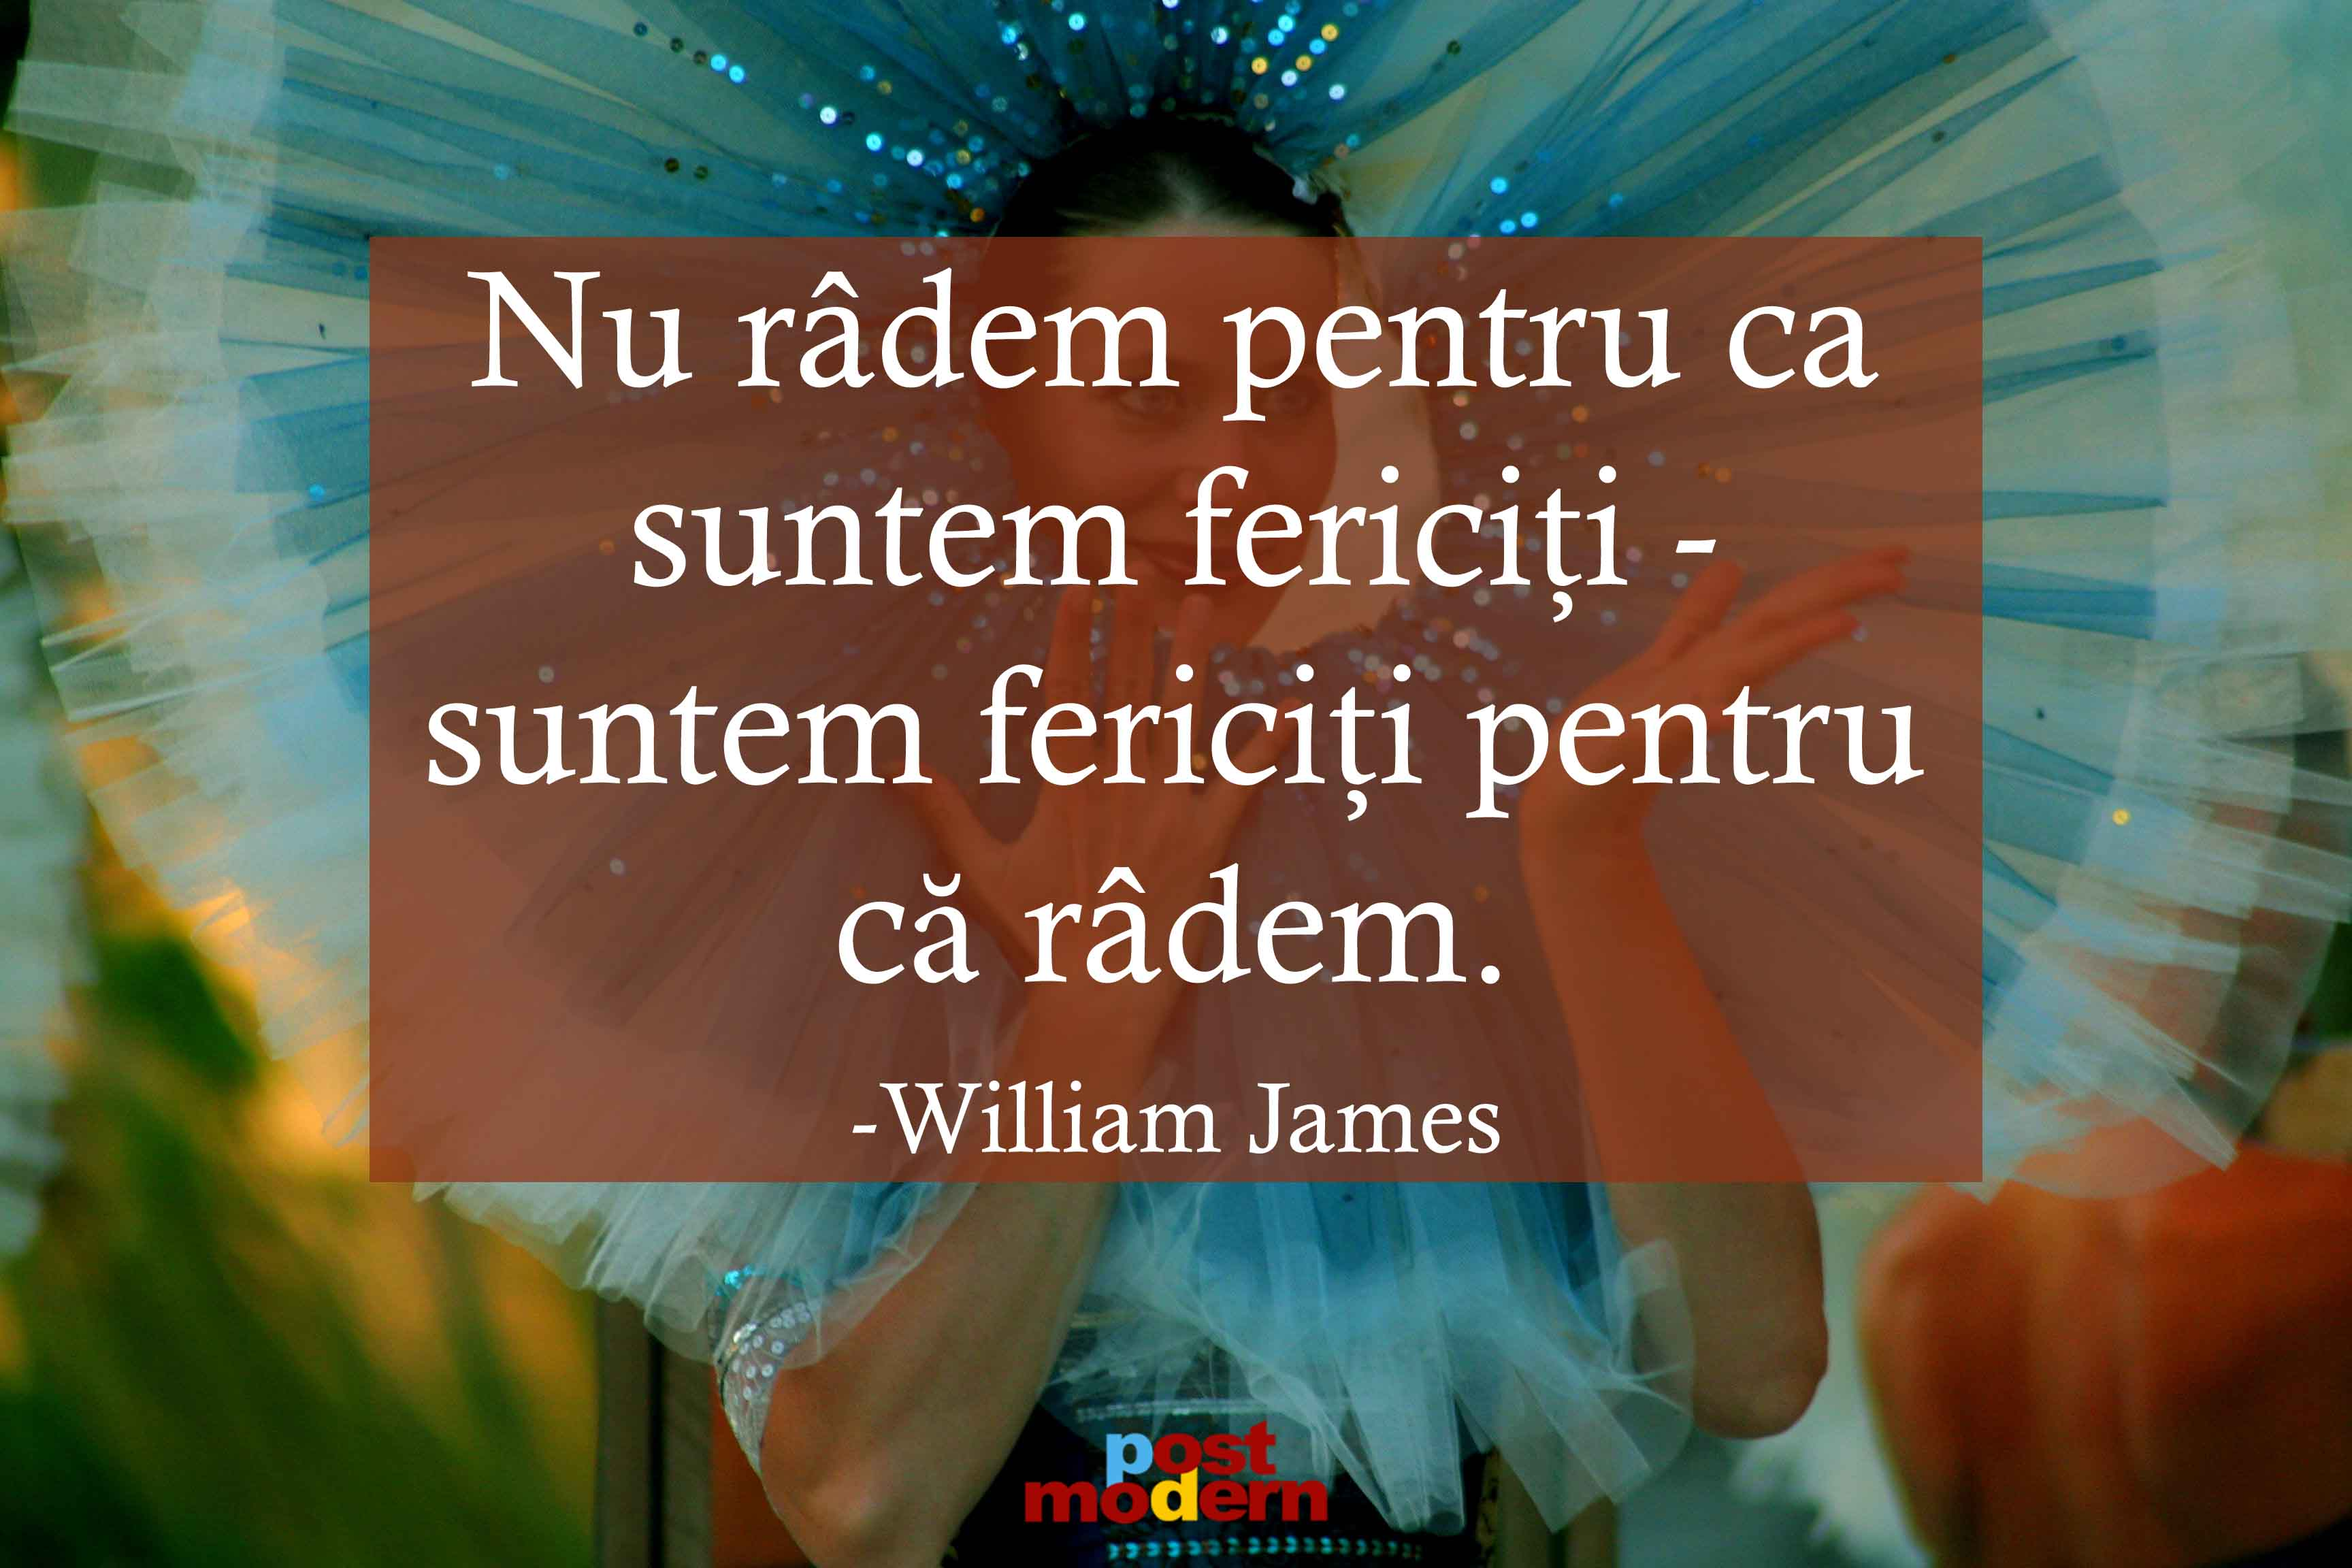 citate despre fericire William James